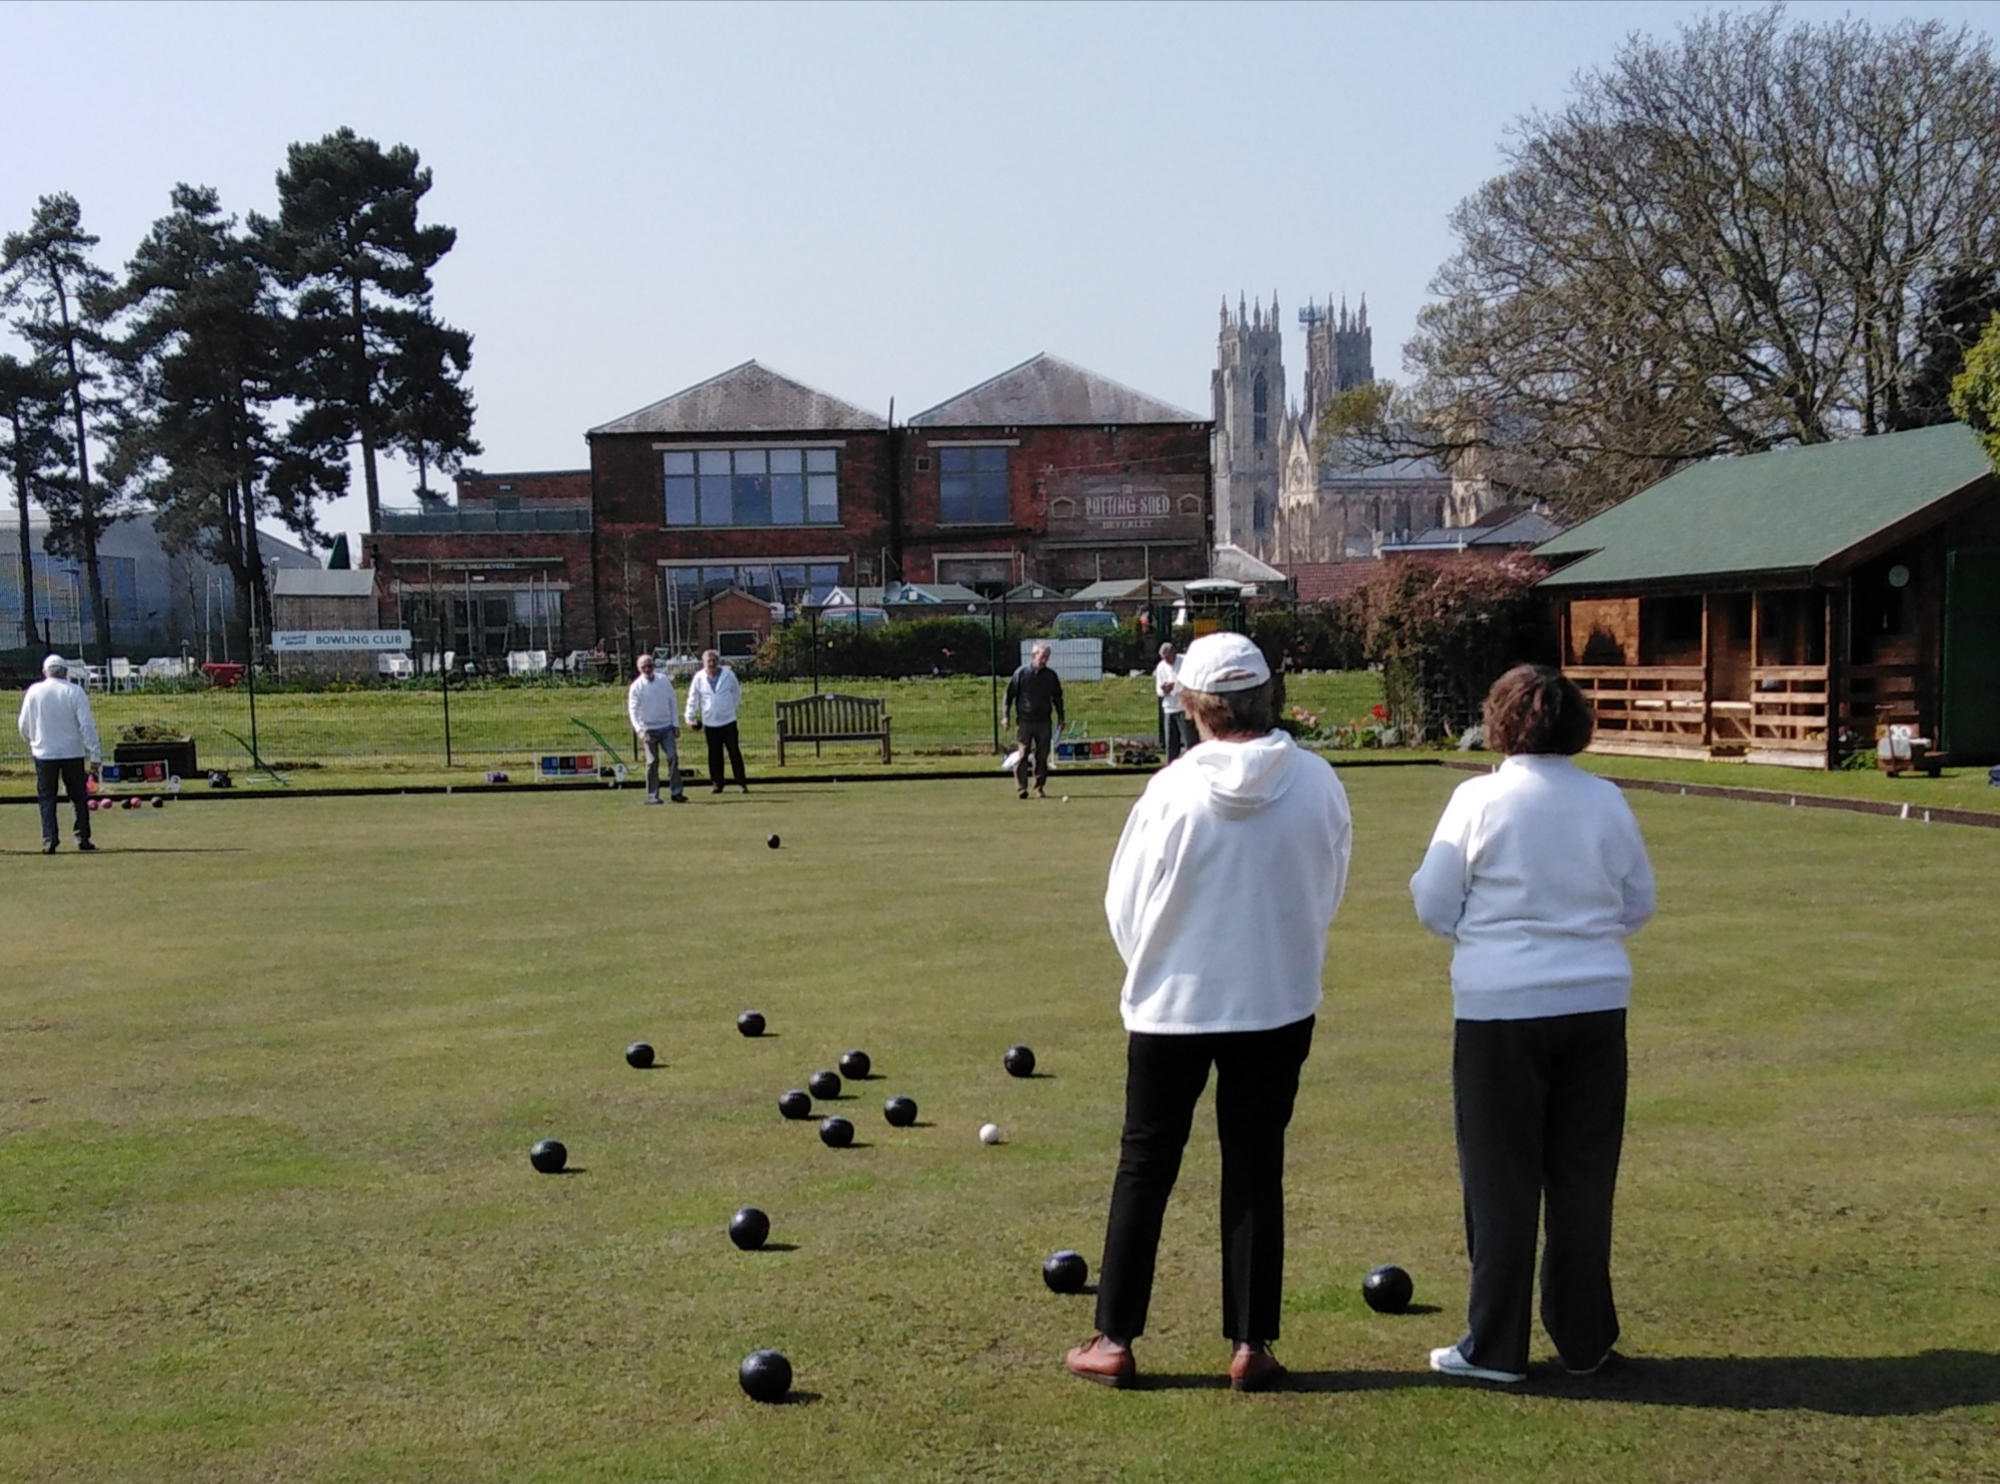 shows Beverley bowling club members enjoying a game of bowls in the spring sunshine.